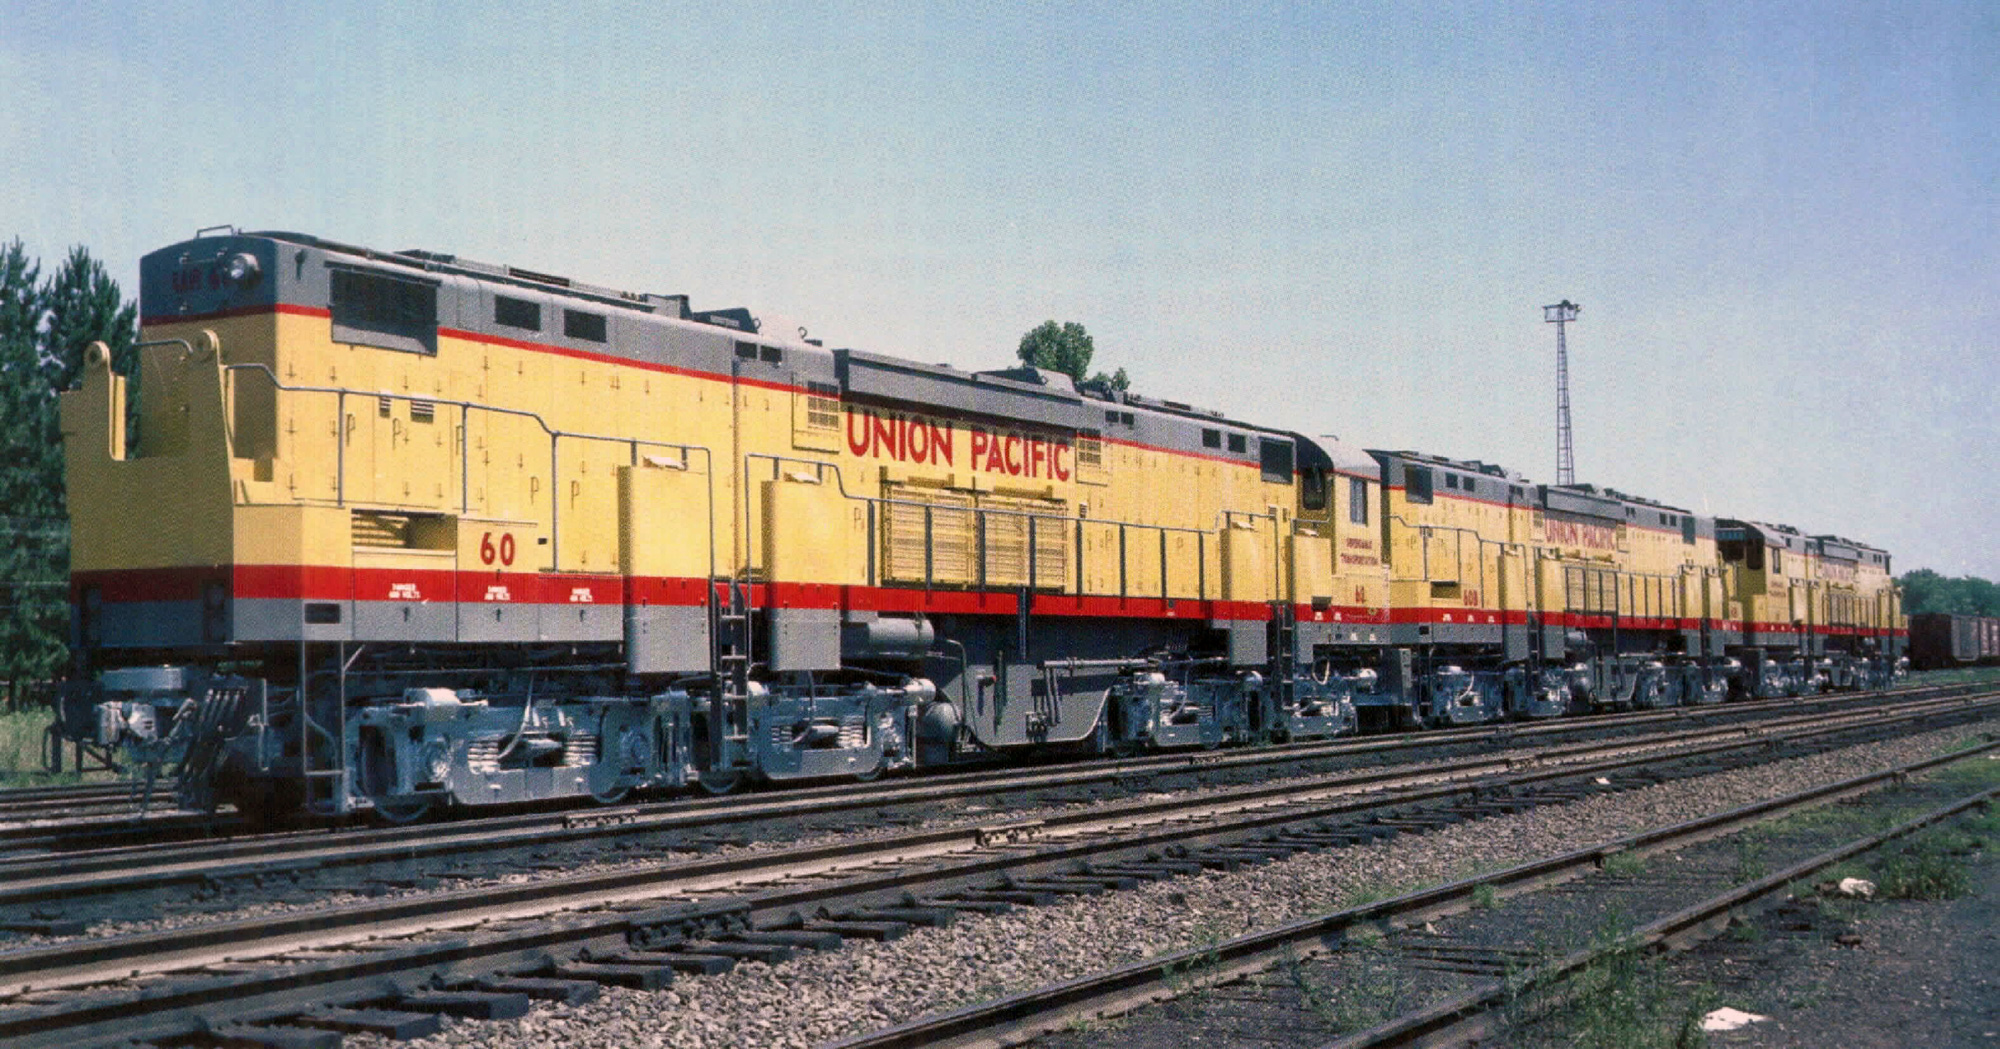 Alco C855 on electric field units